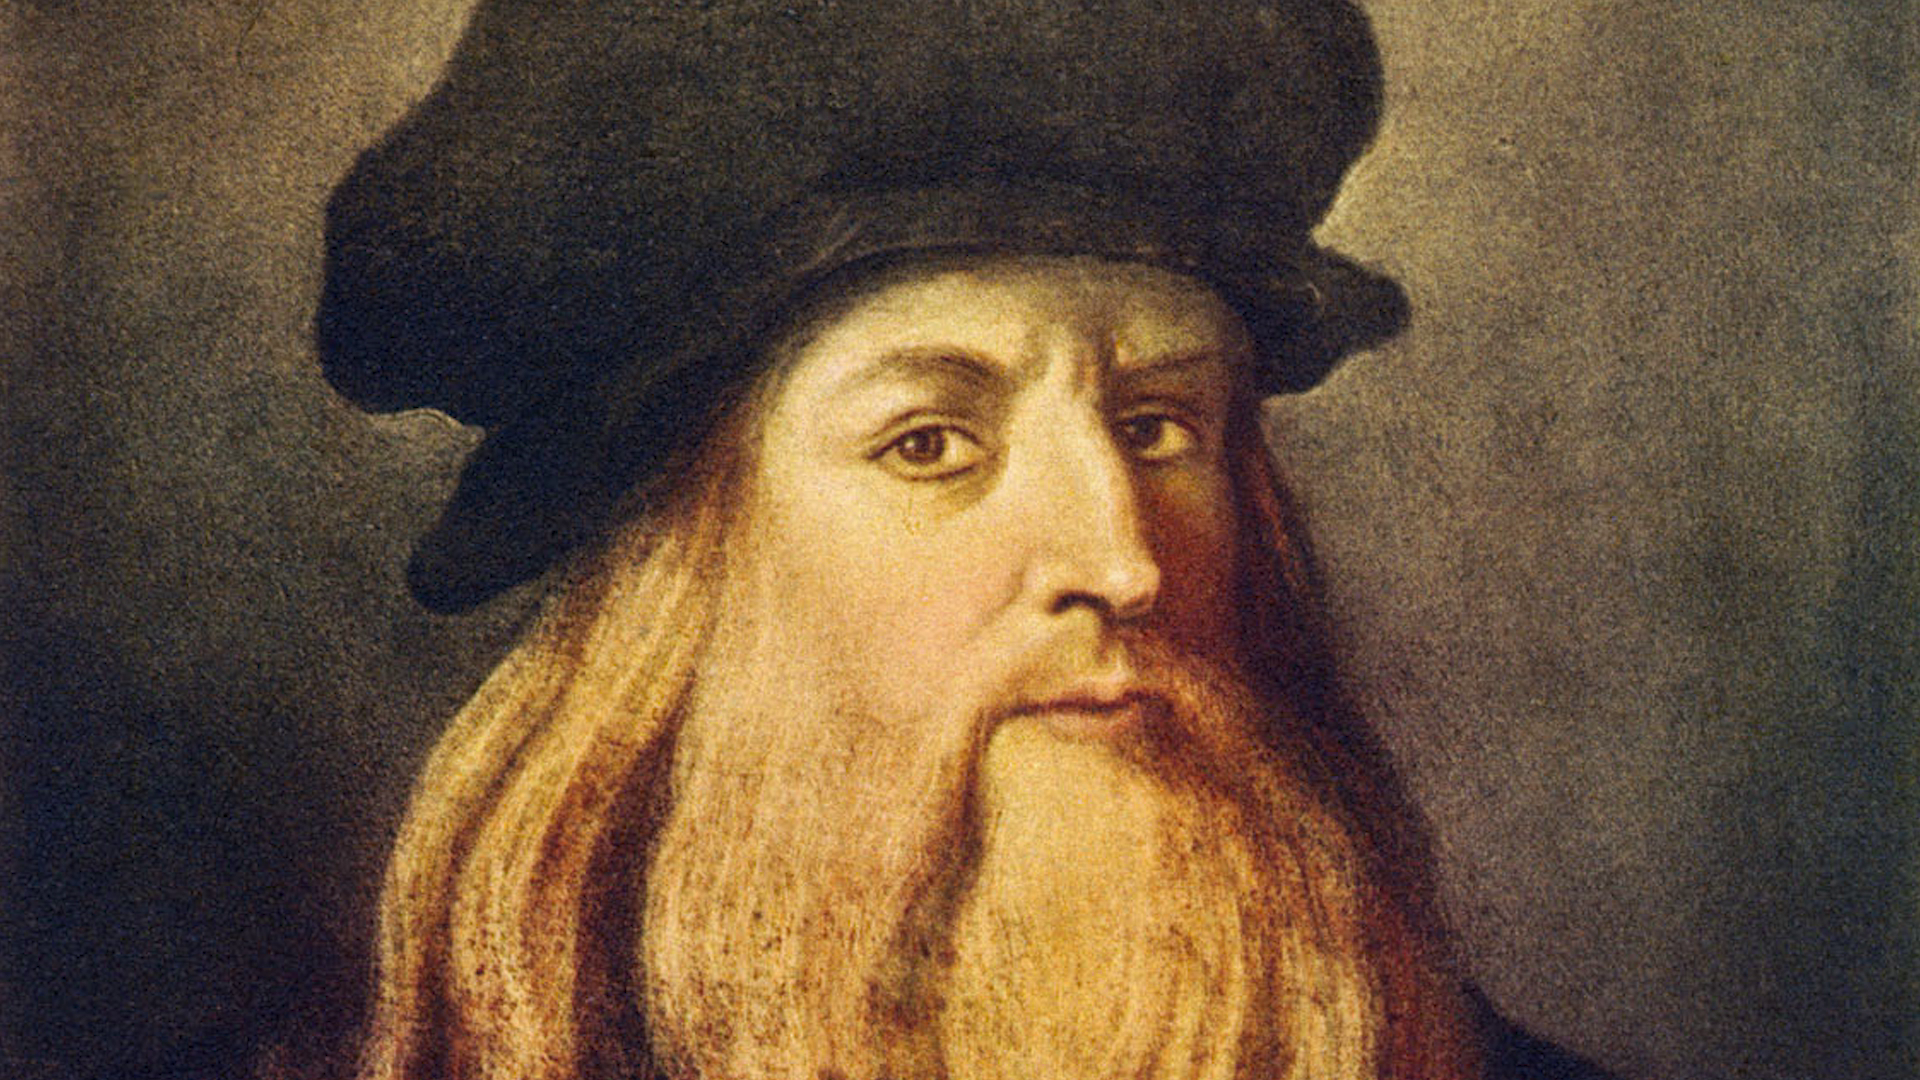 Leonardo da Vinci: The Biography by Walter Isaacson review – unparalleled creative genius